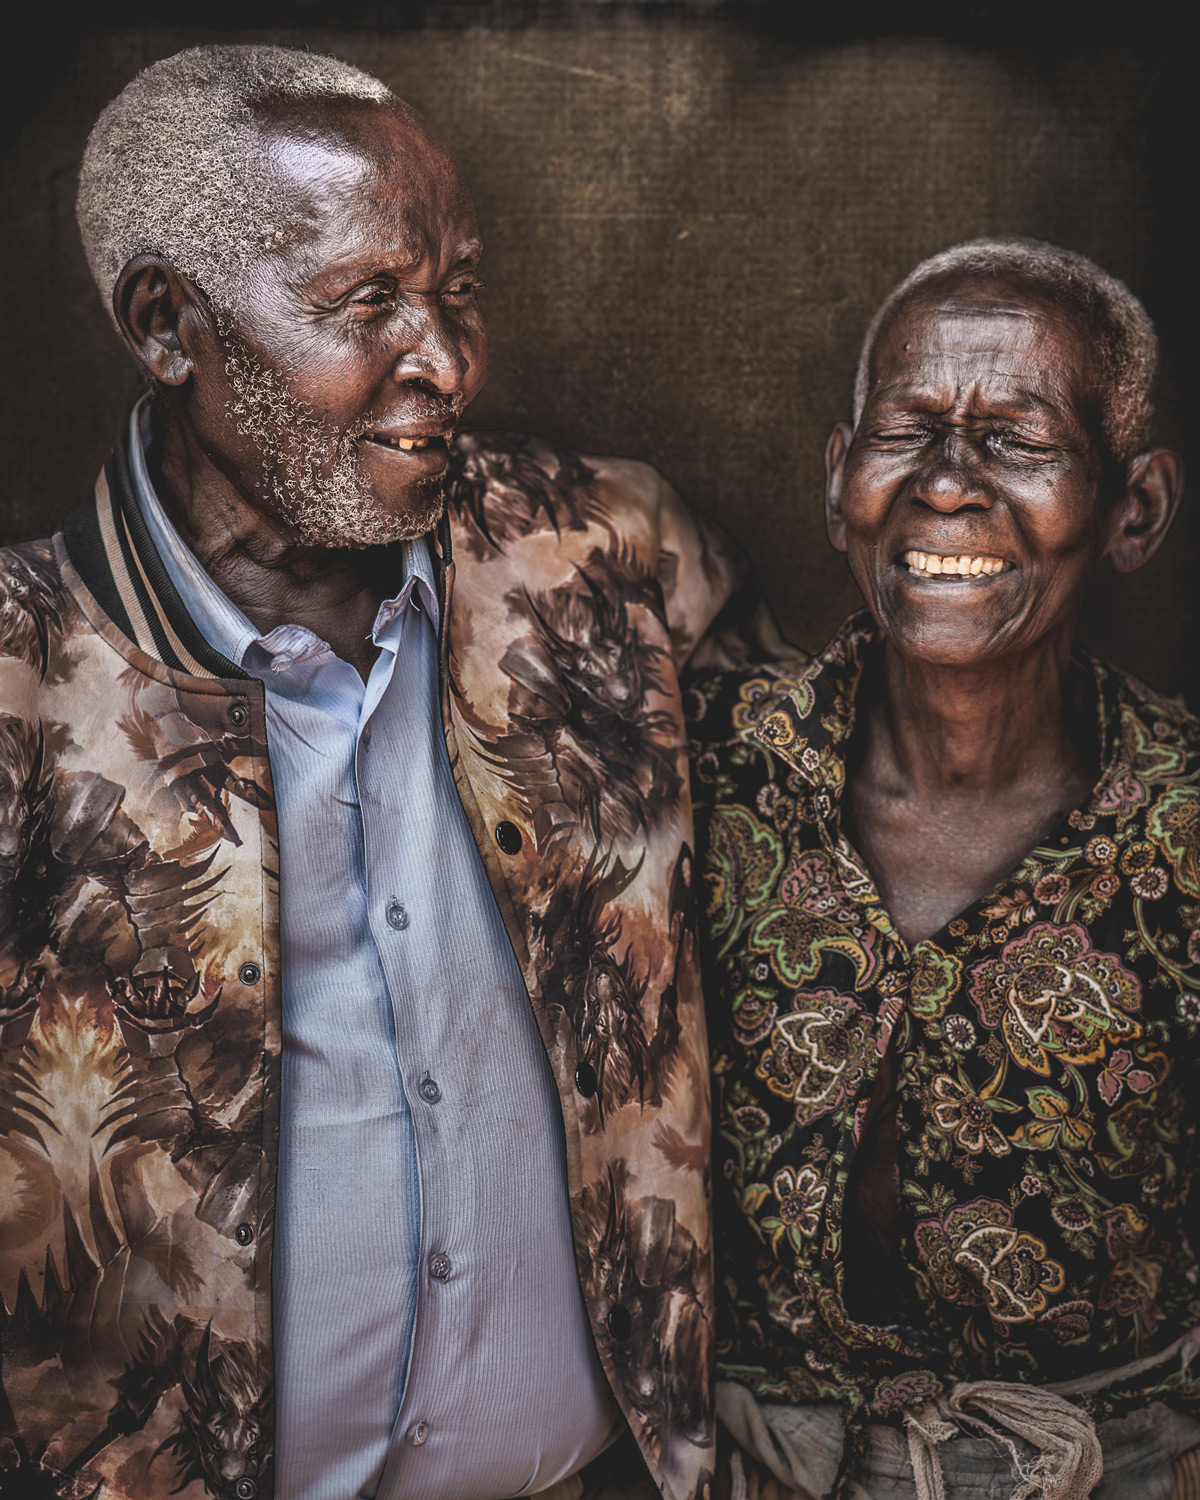 Mzee (100) poses with his wife (90) for a portrait in Jinja, Uganda © Bob Ditty